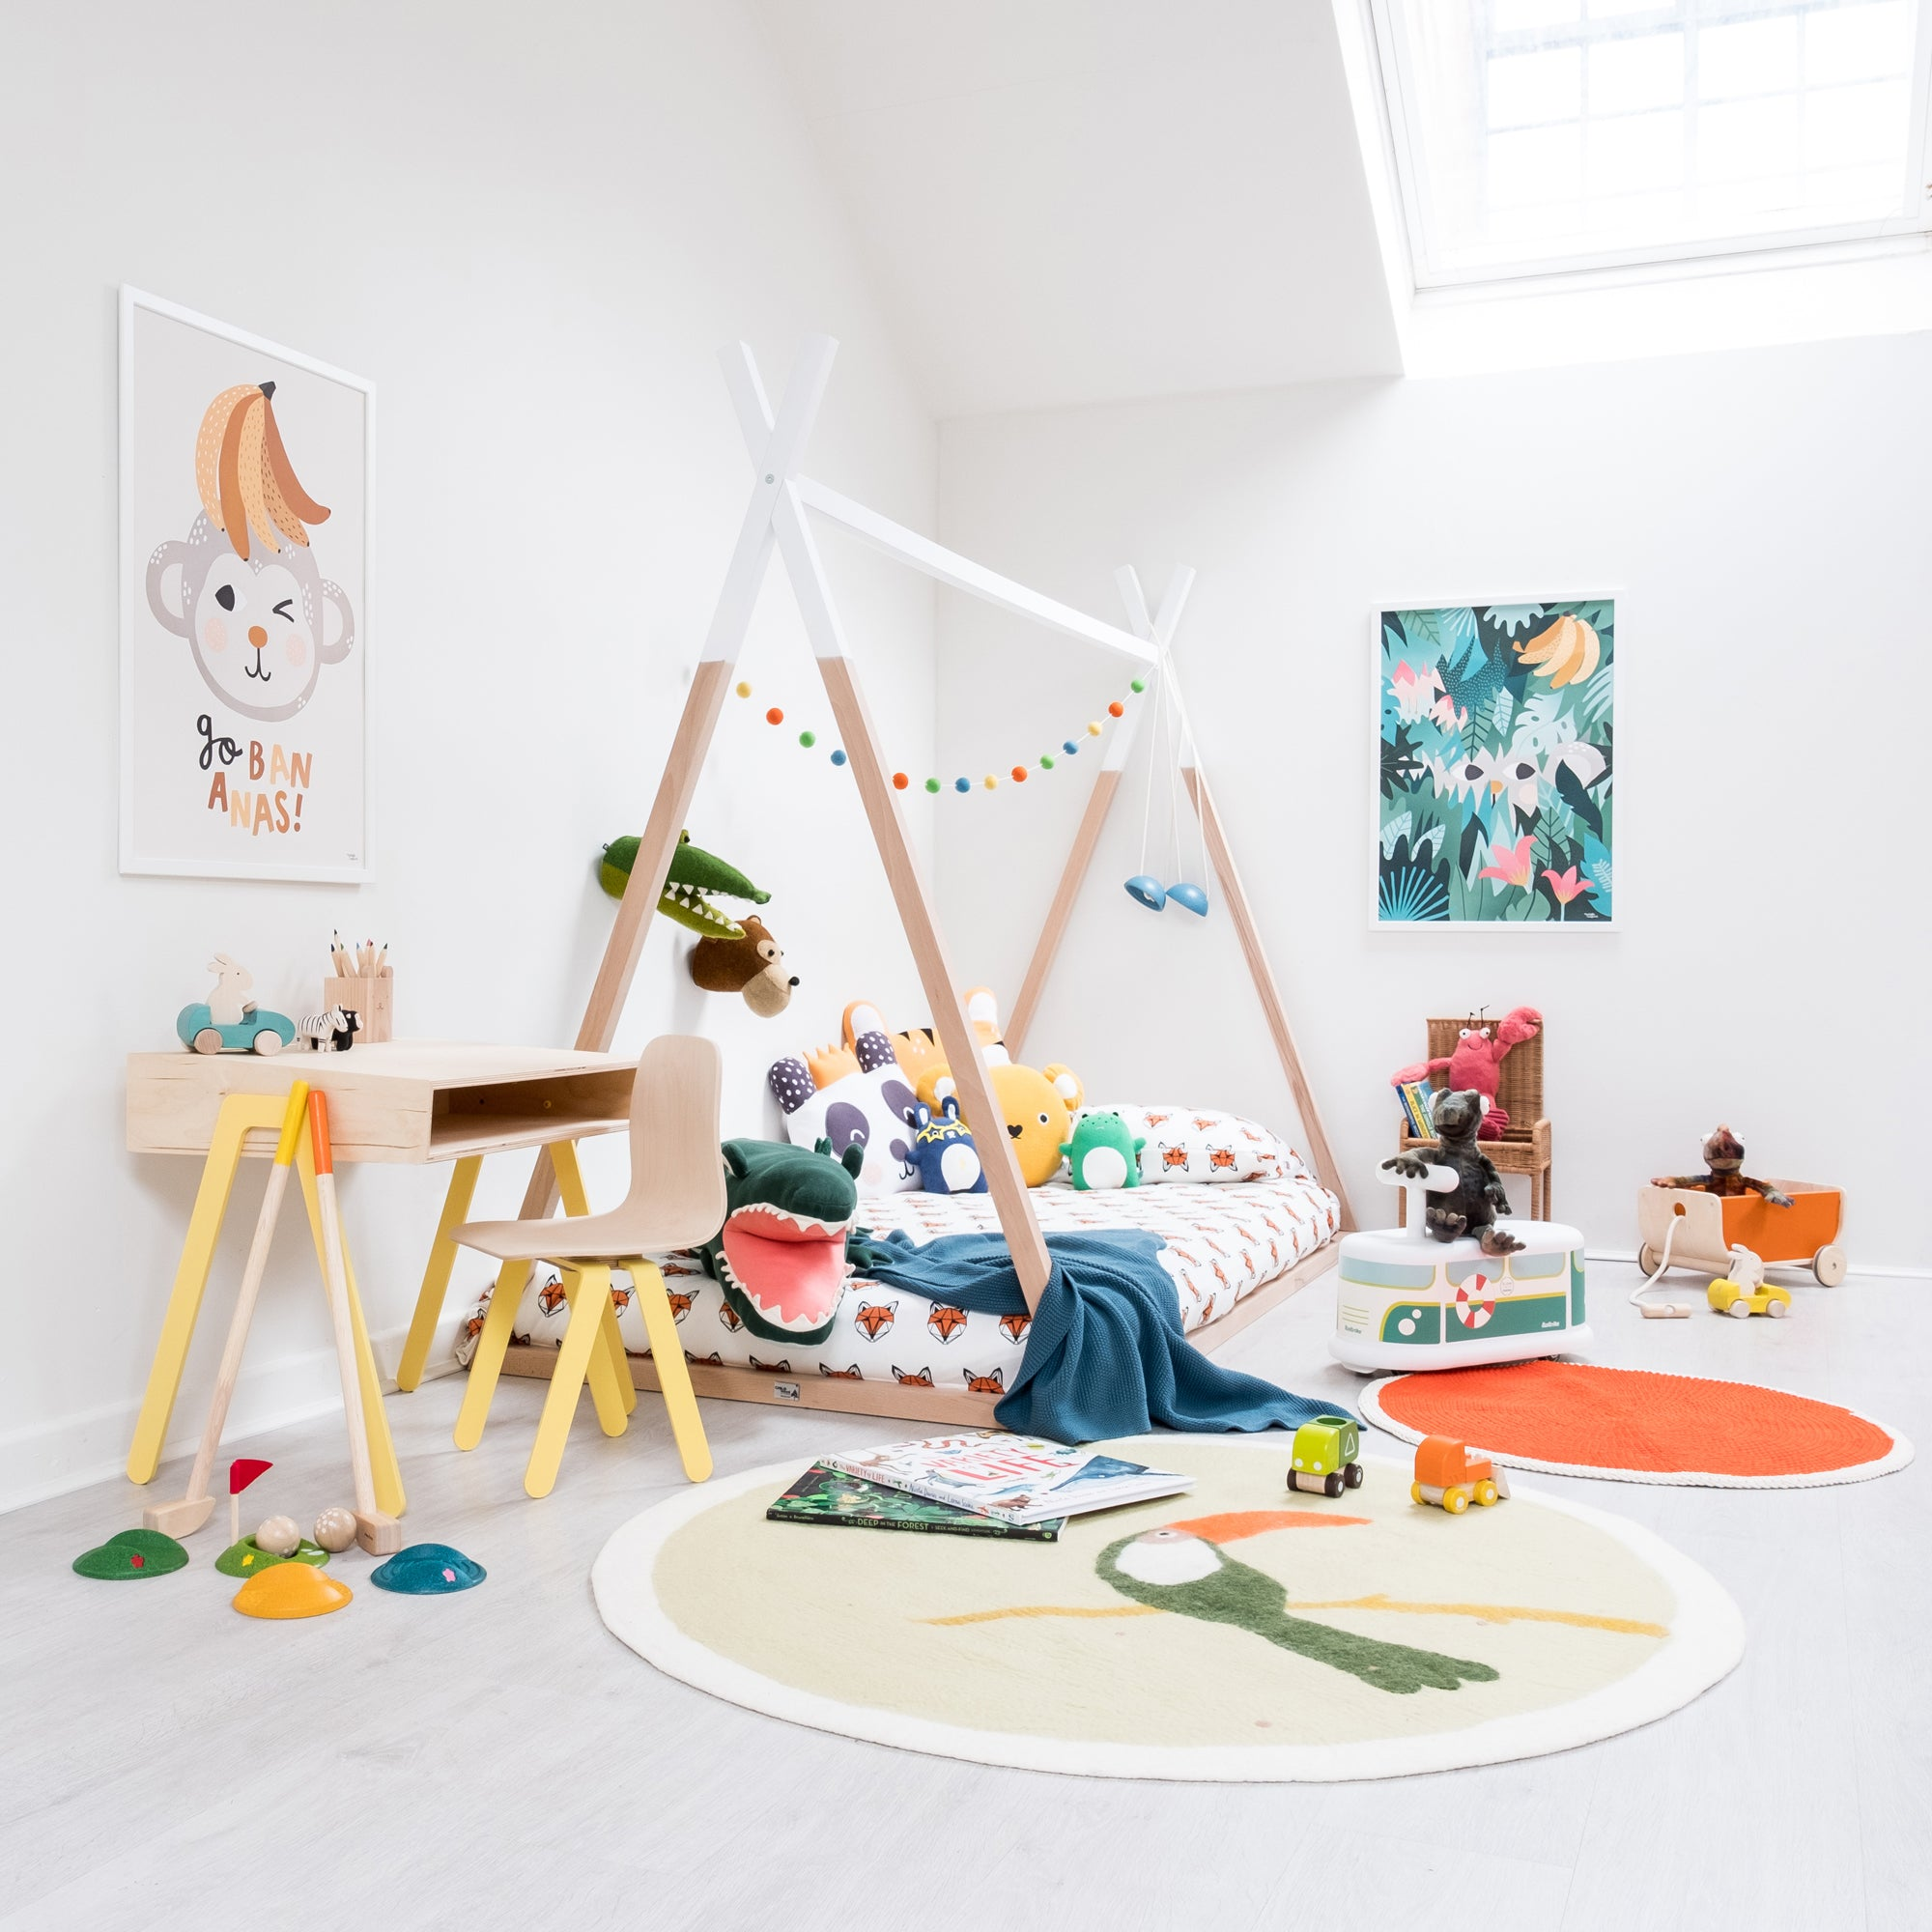 Hide and Seek Children's Room, styled by Bobby Rabbit.